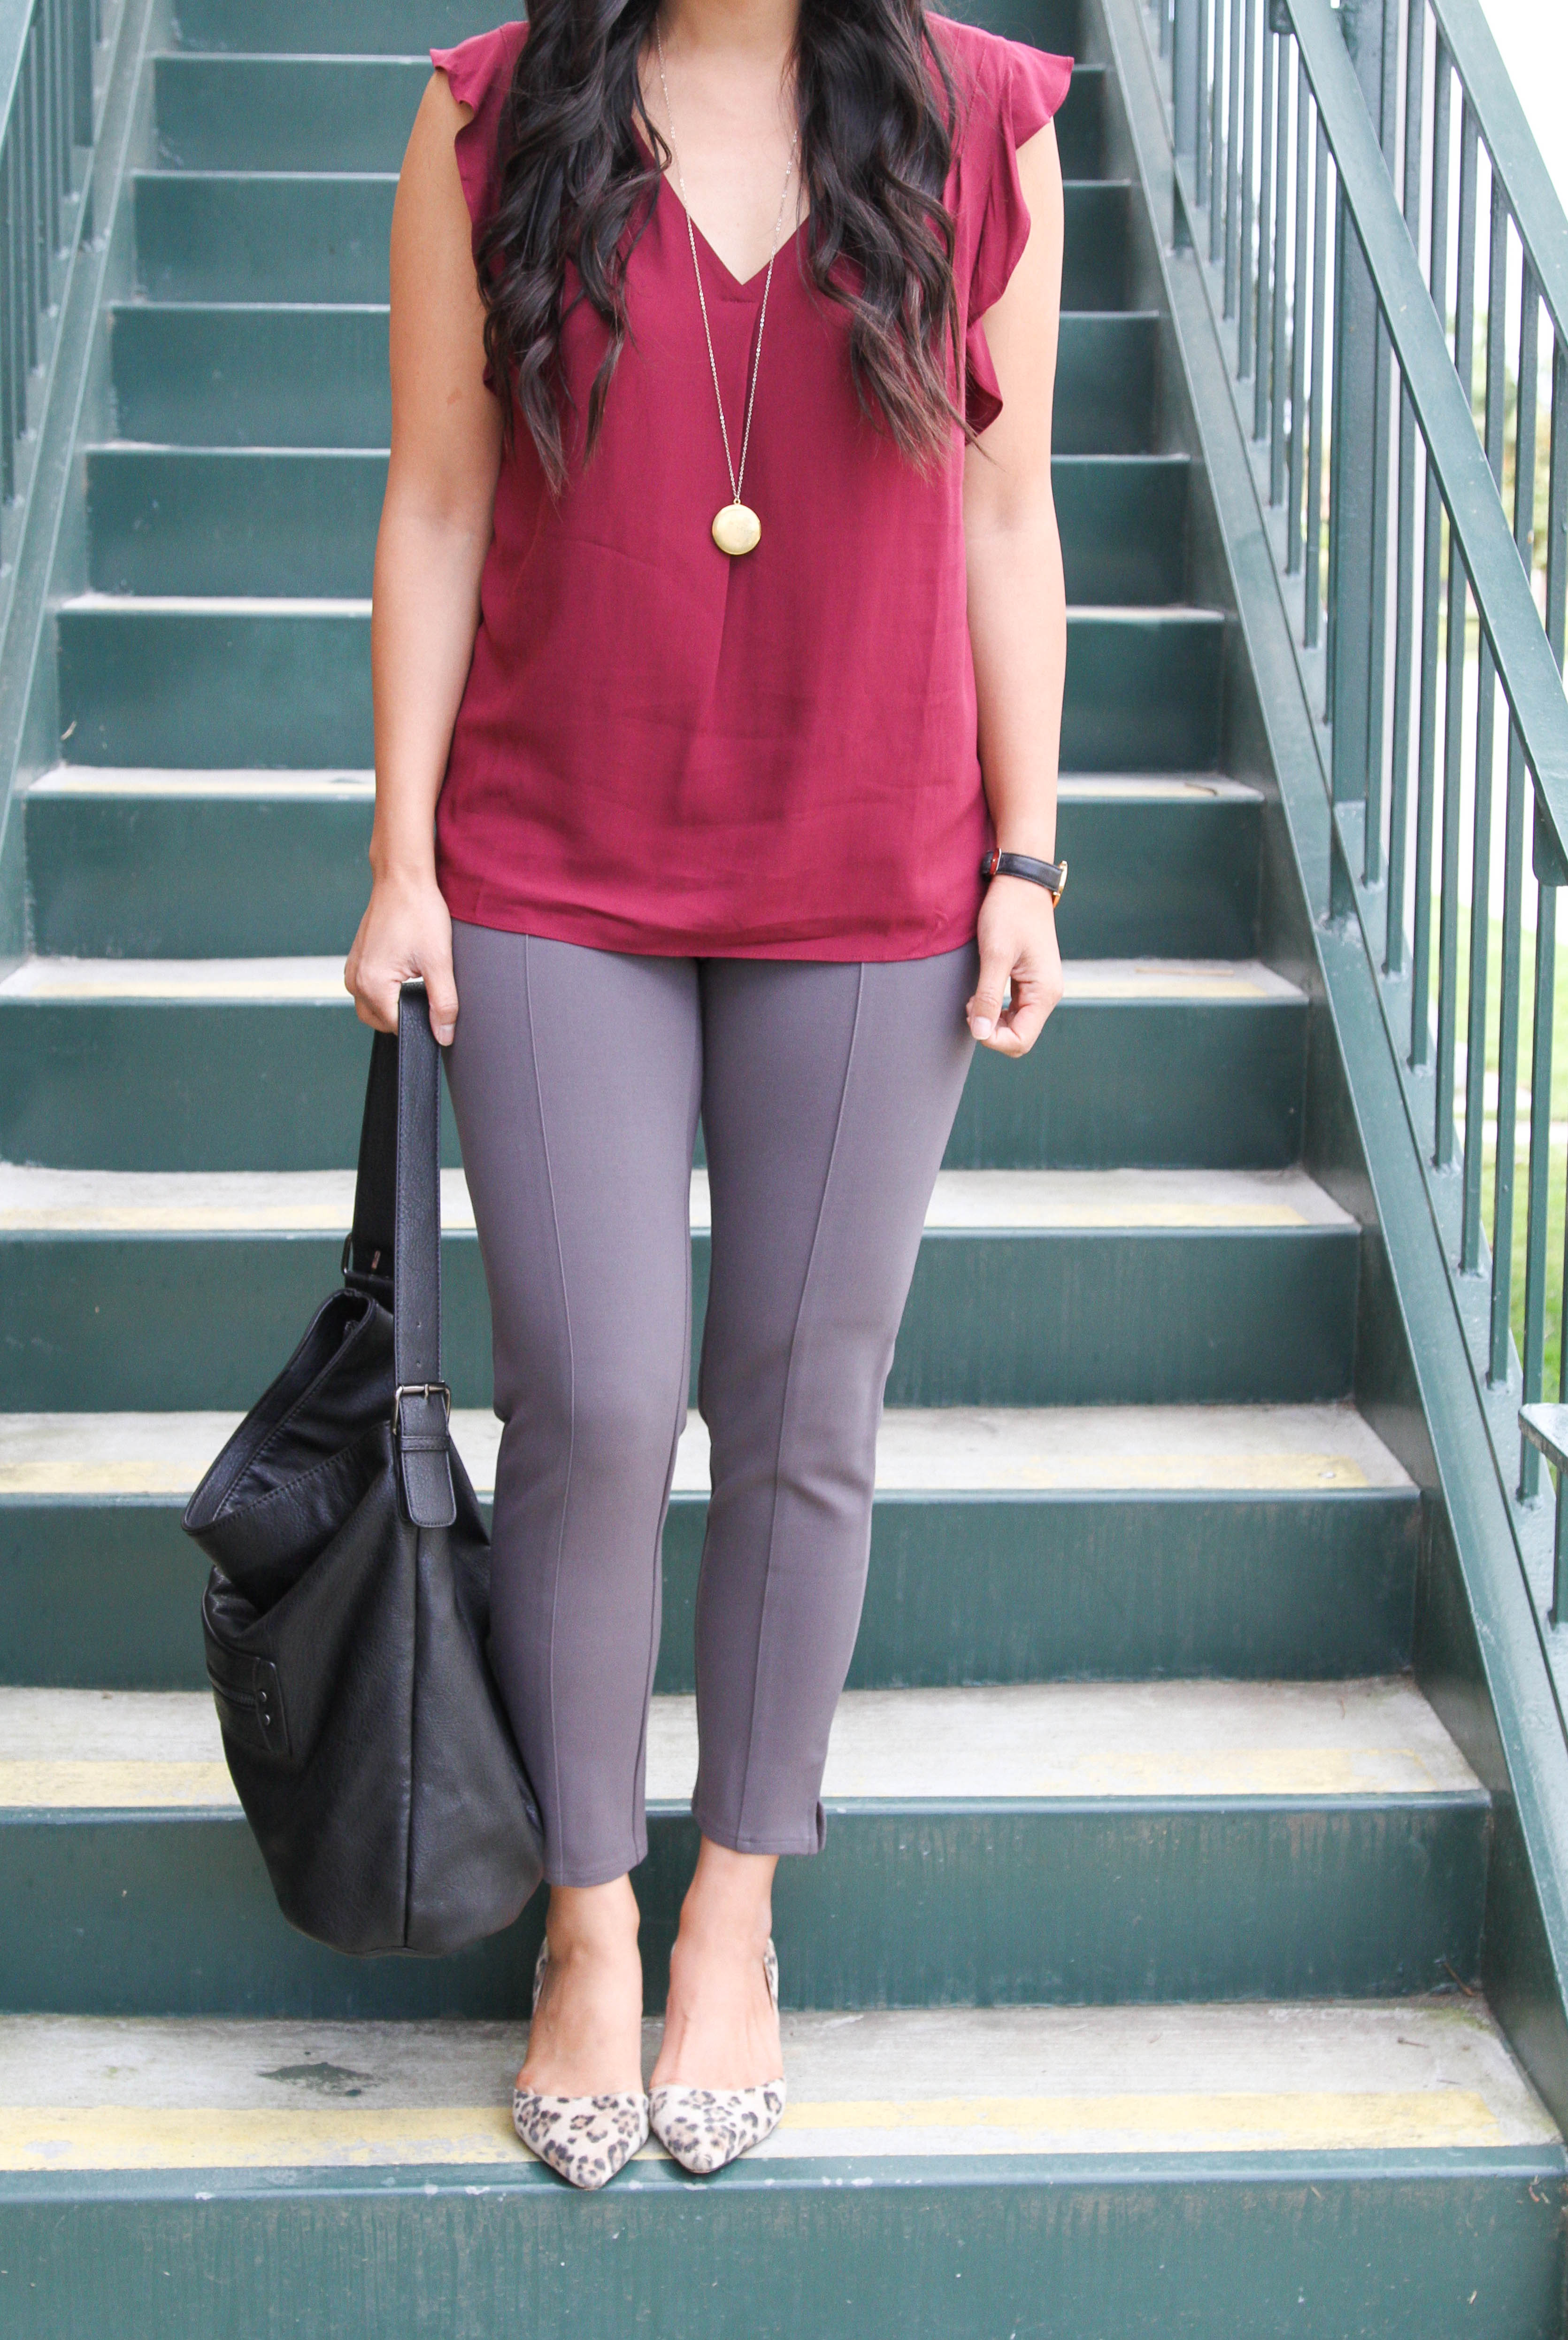 Business Casual Outfit with Grey Slacks and Maroon Top